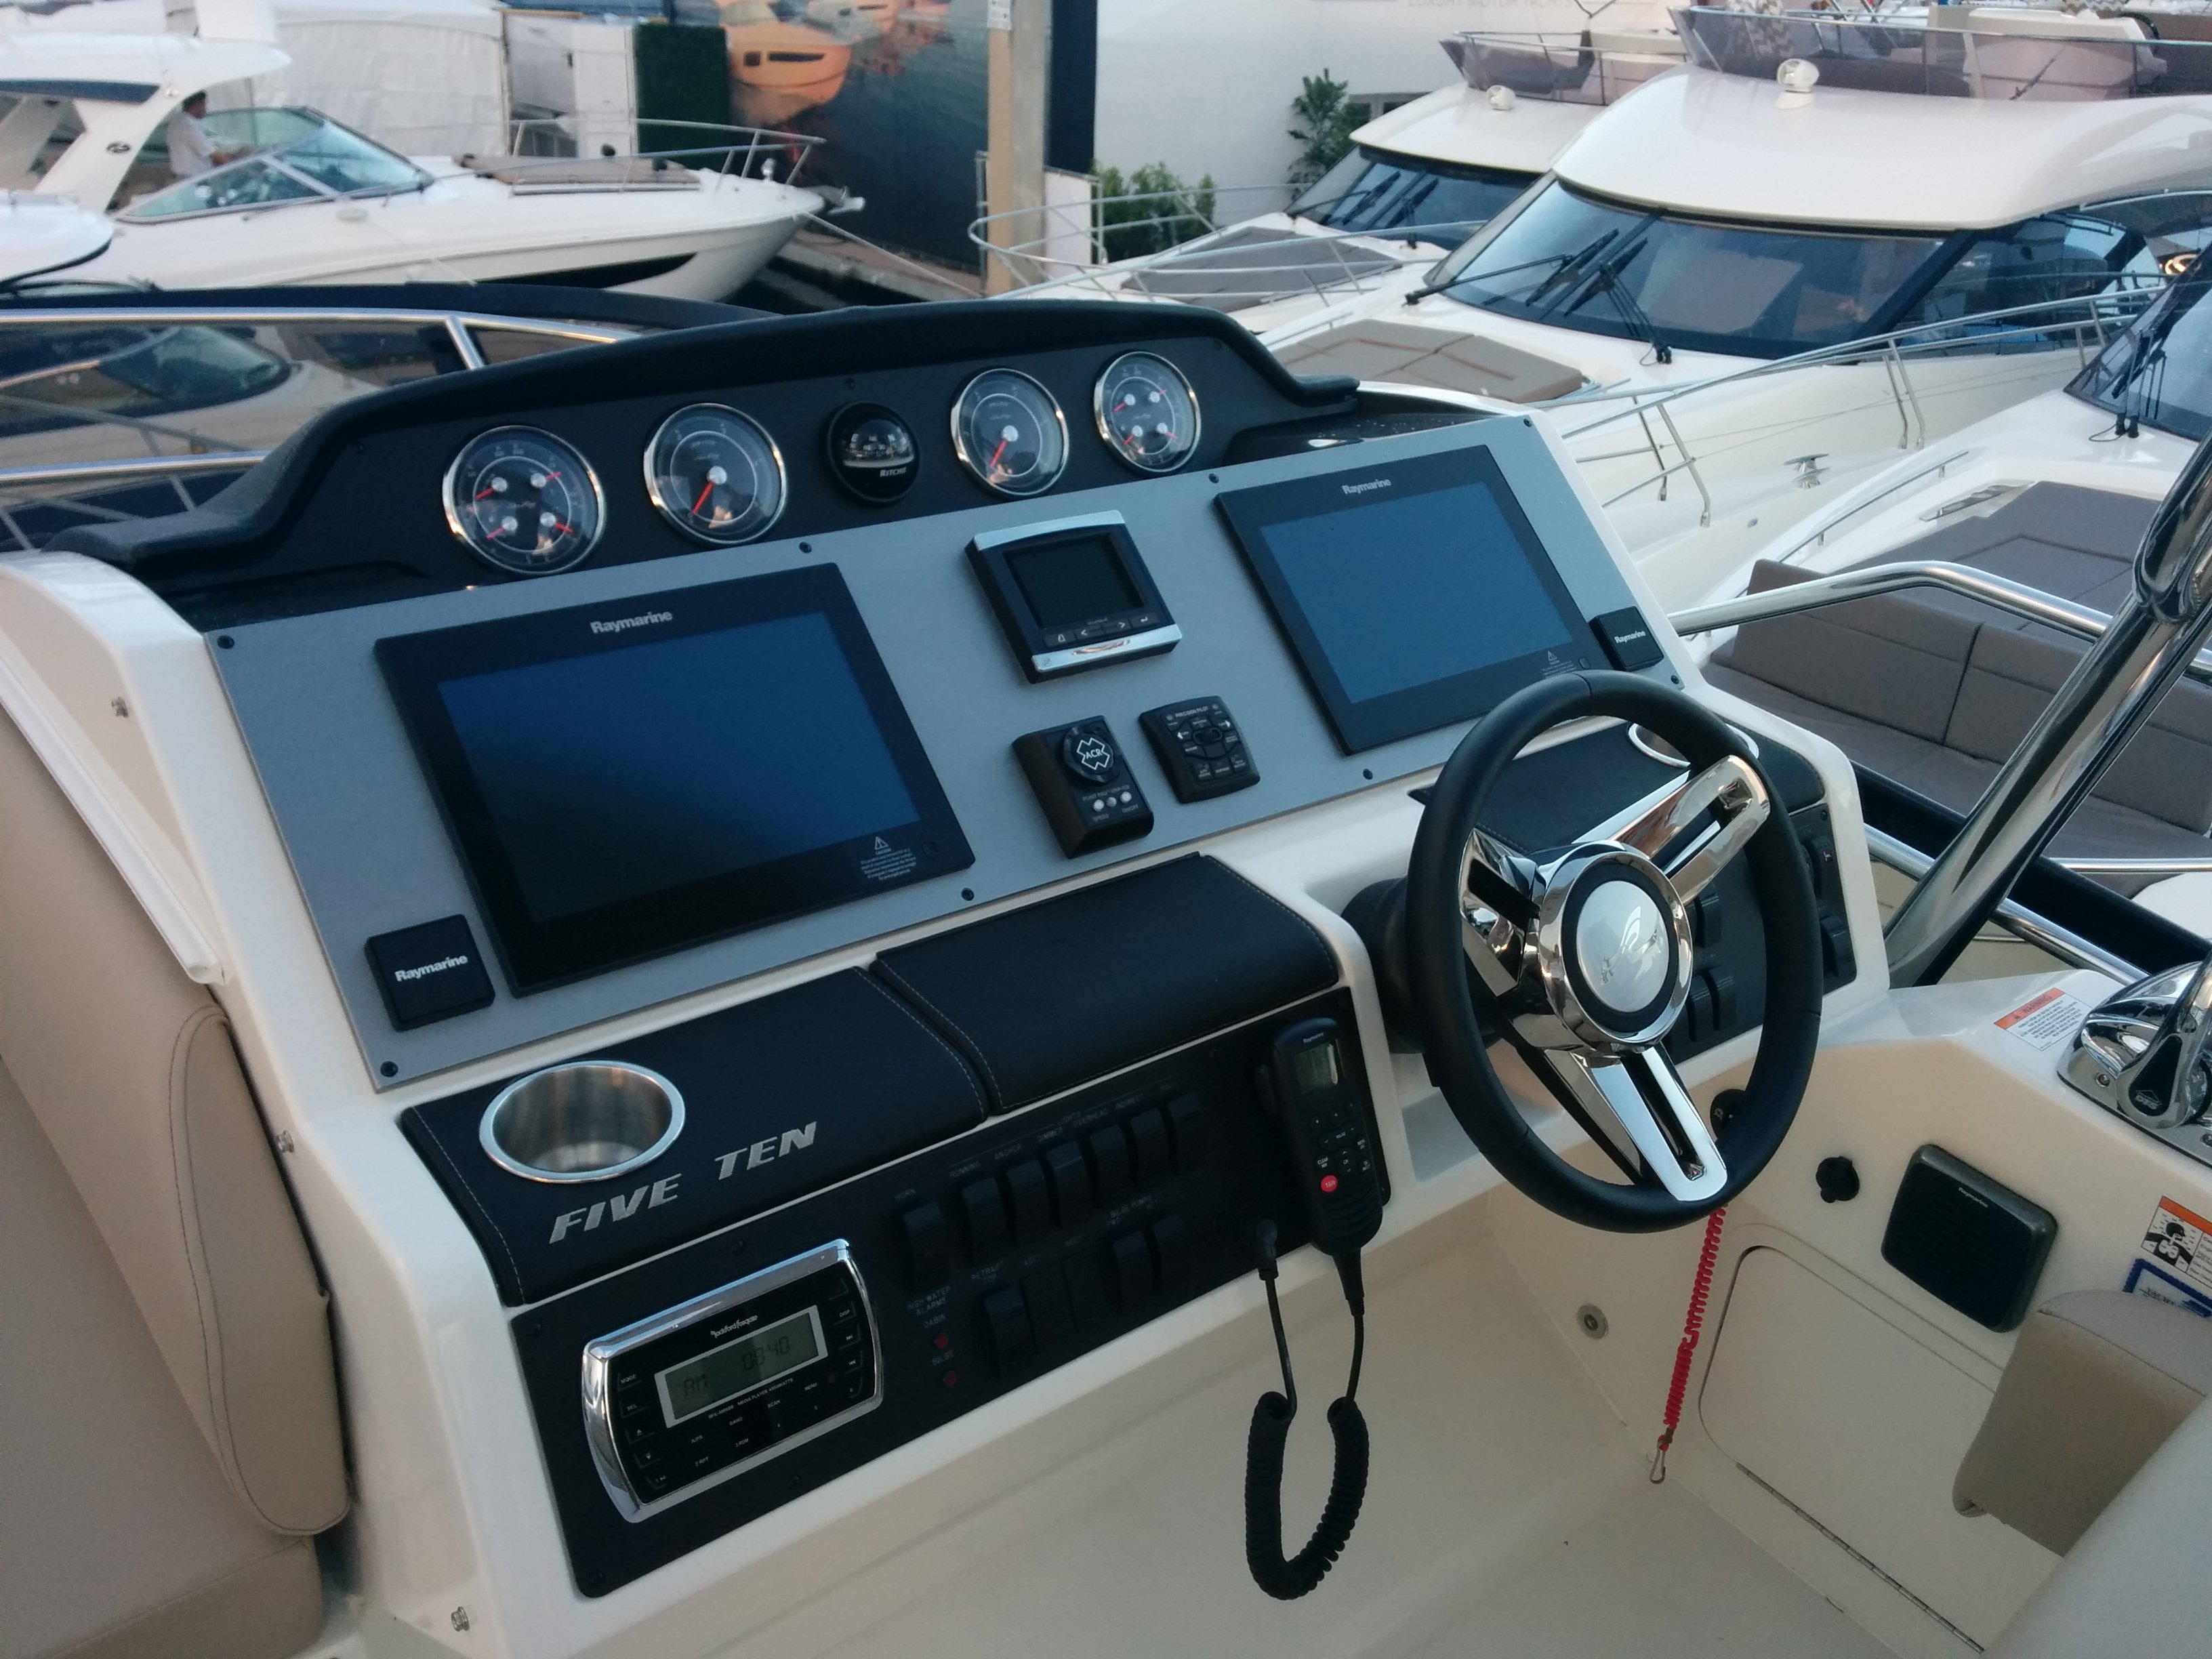 SEA RAY BOATS DASHBOARD